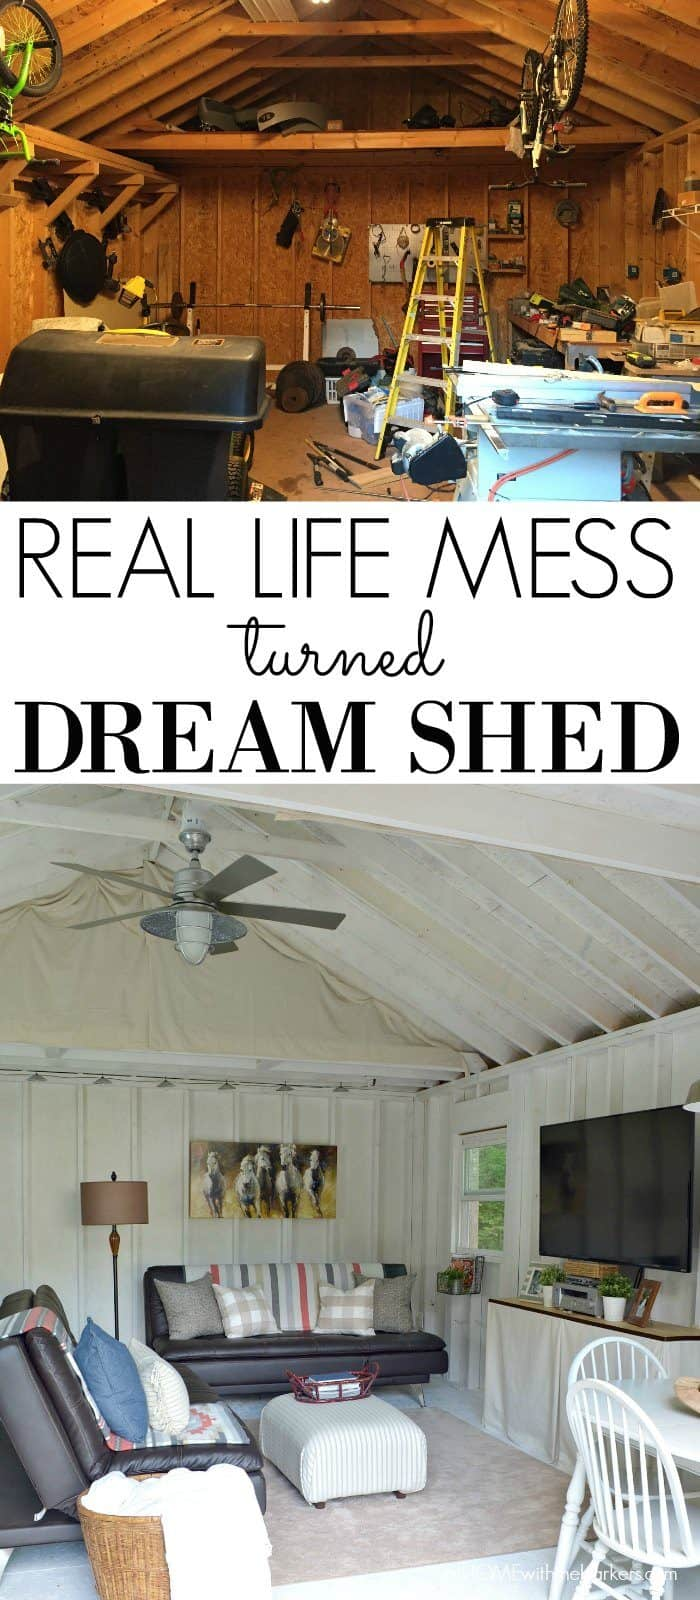 Turning our real life mess into our Dream Shed